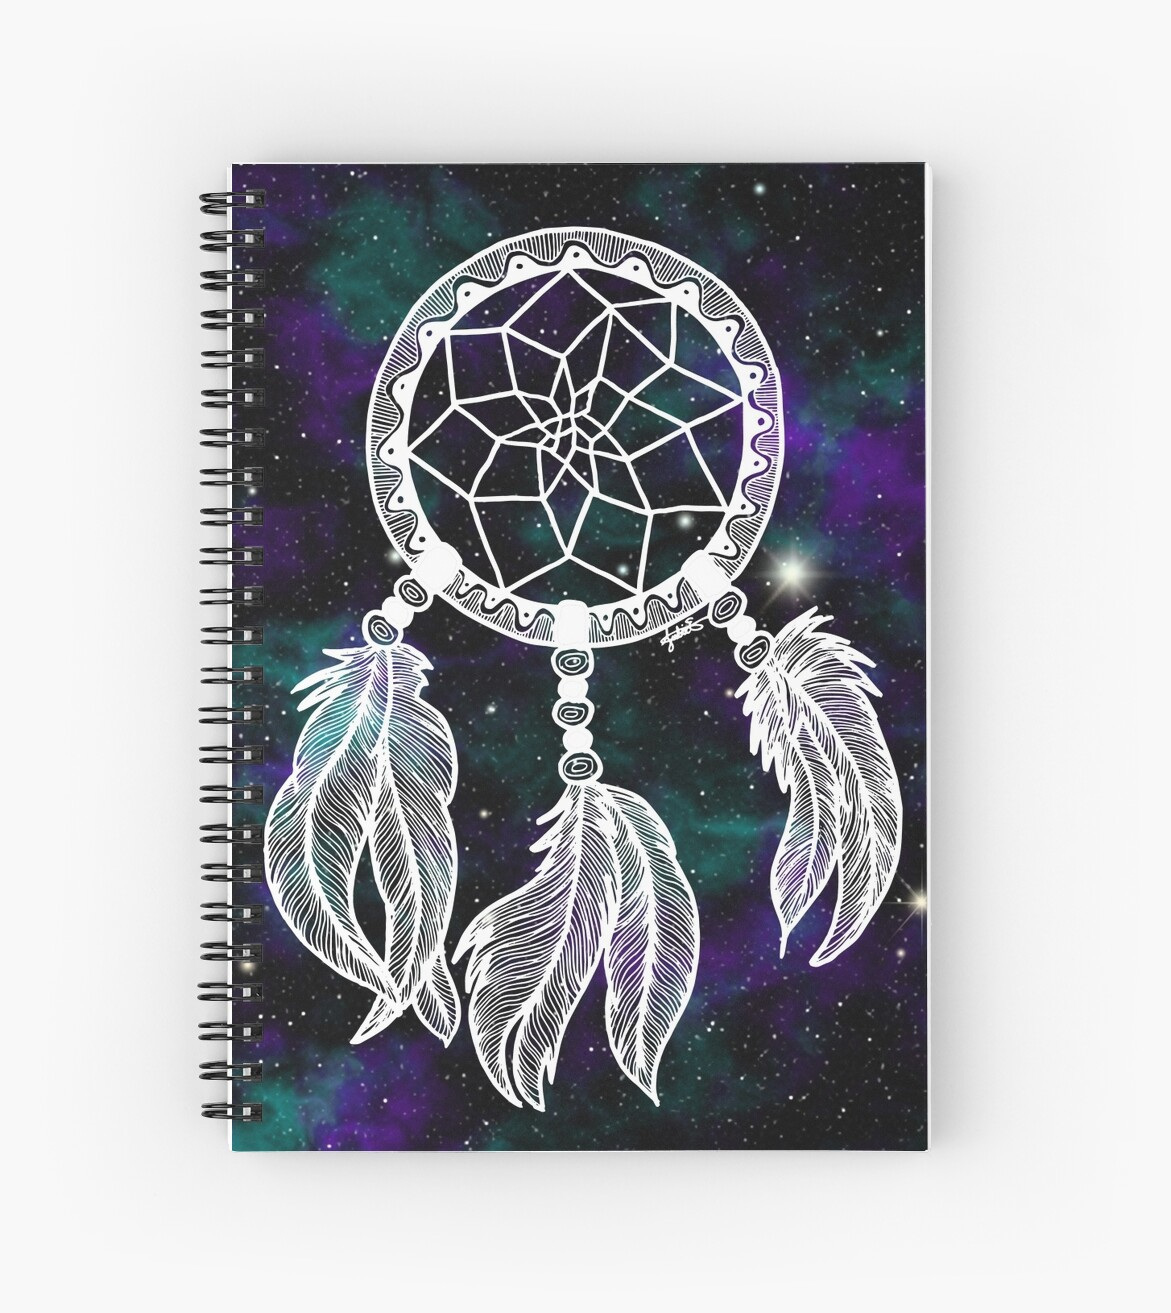 galaxy dreamcatcher dream catcher notebook gift ideas